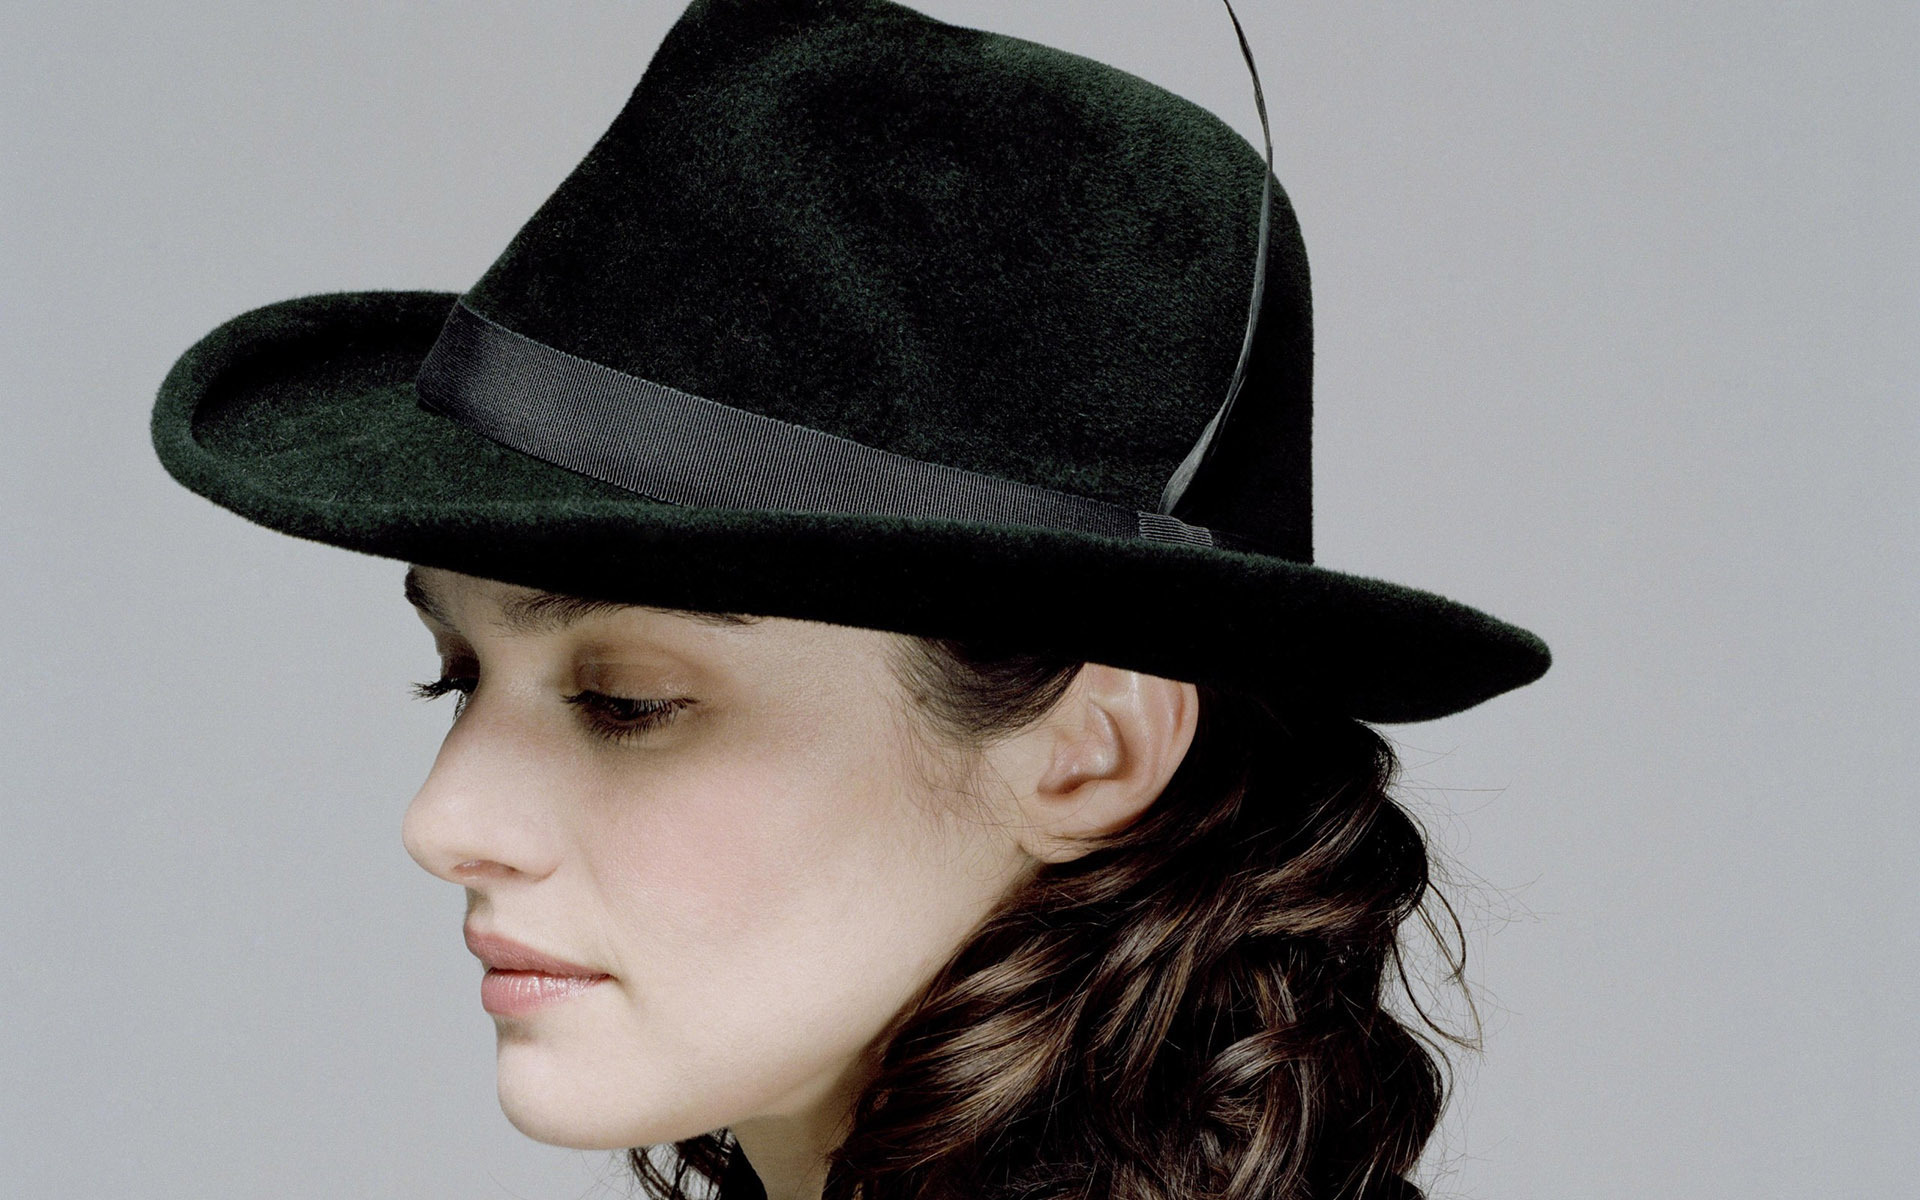 Rachel Weisz High Quality Wallpapers